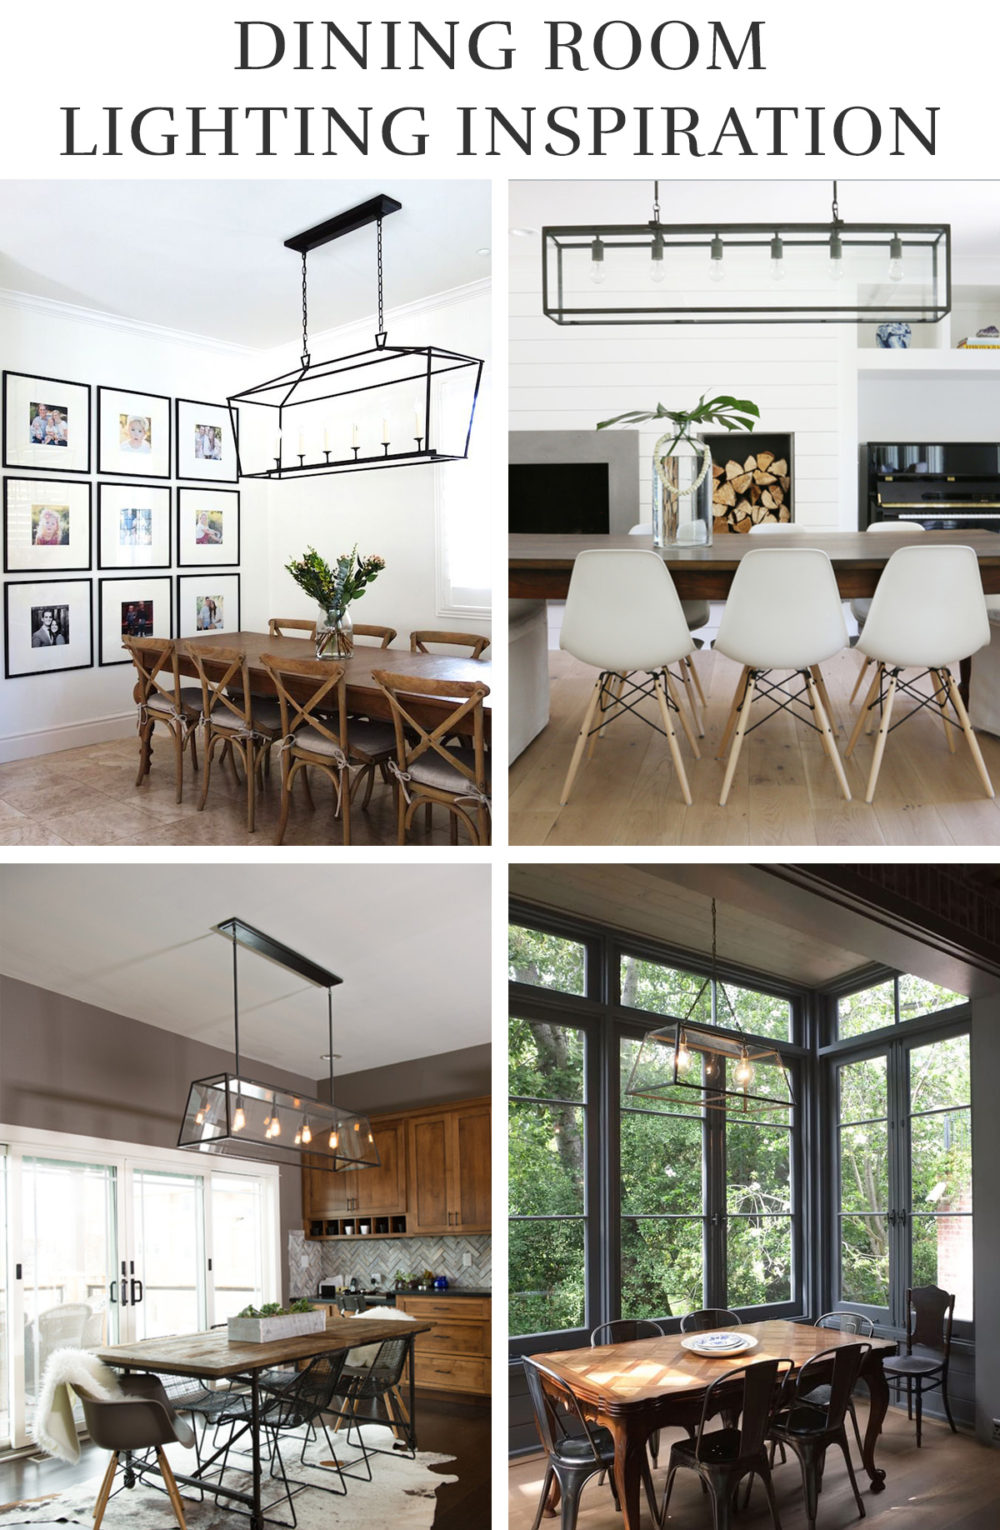 Industrial Modern Dining Room Lighting Inspiration | Melissa Lynch | melissalynch.com